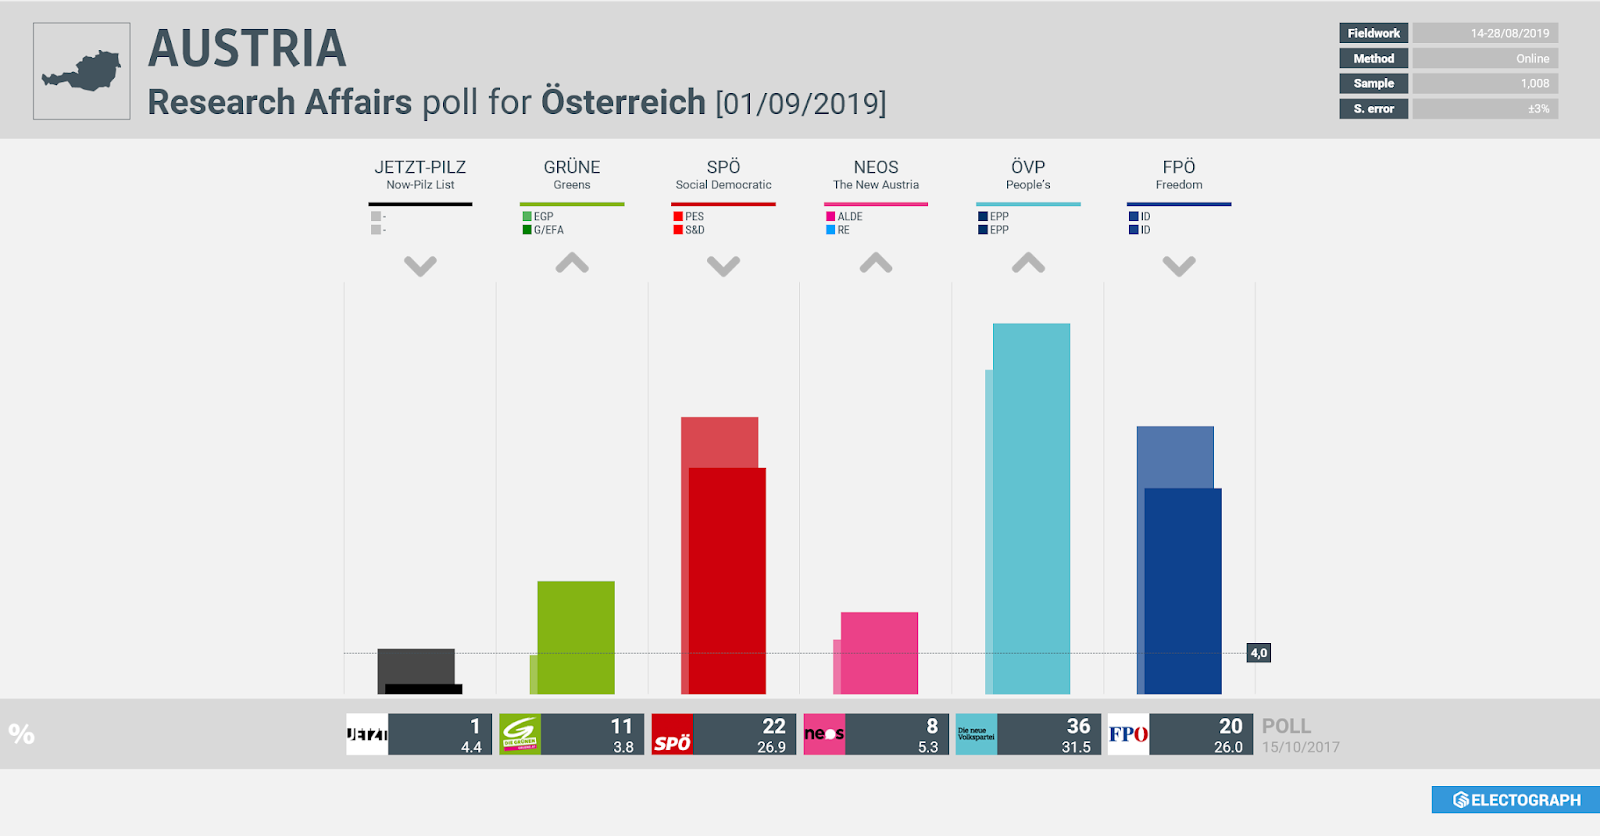 AUSTRIA: Research Affairs poll chart for Österreich, 1 September 2019